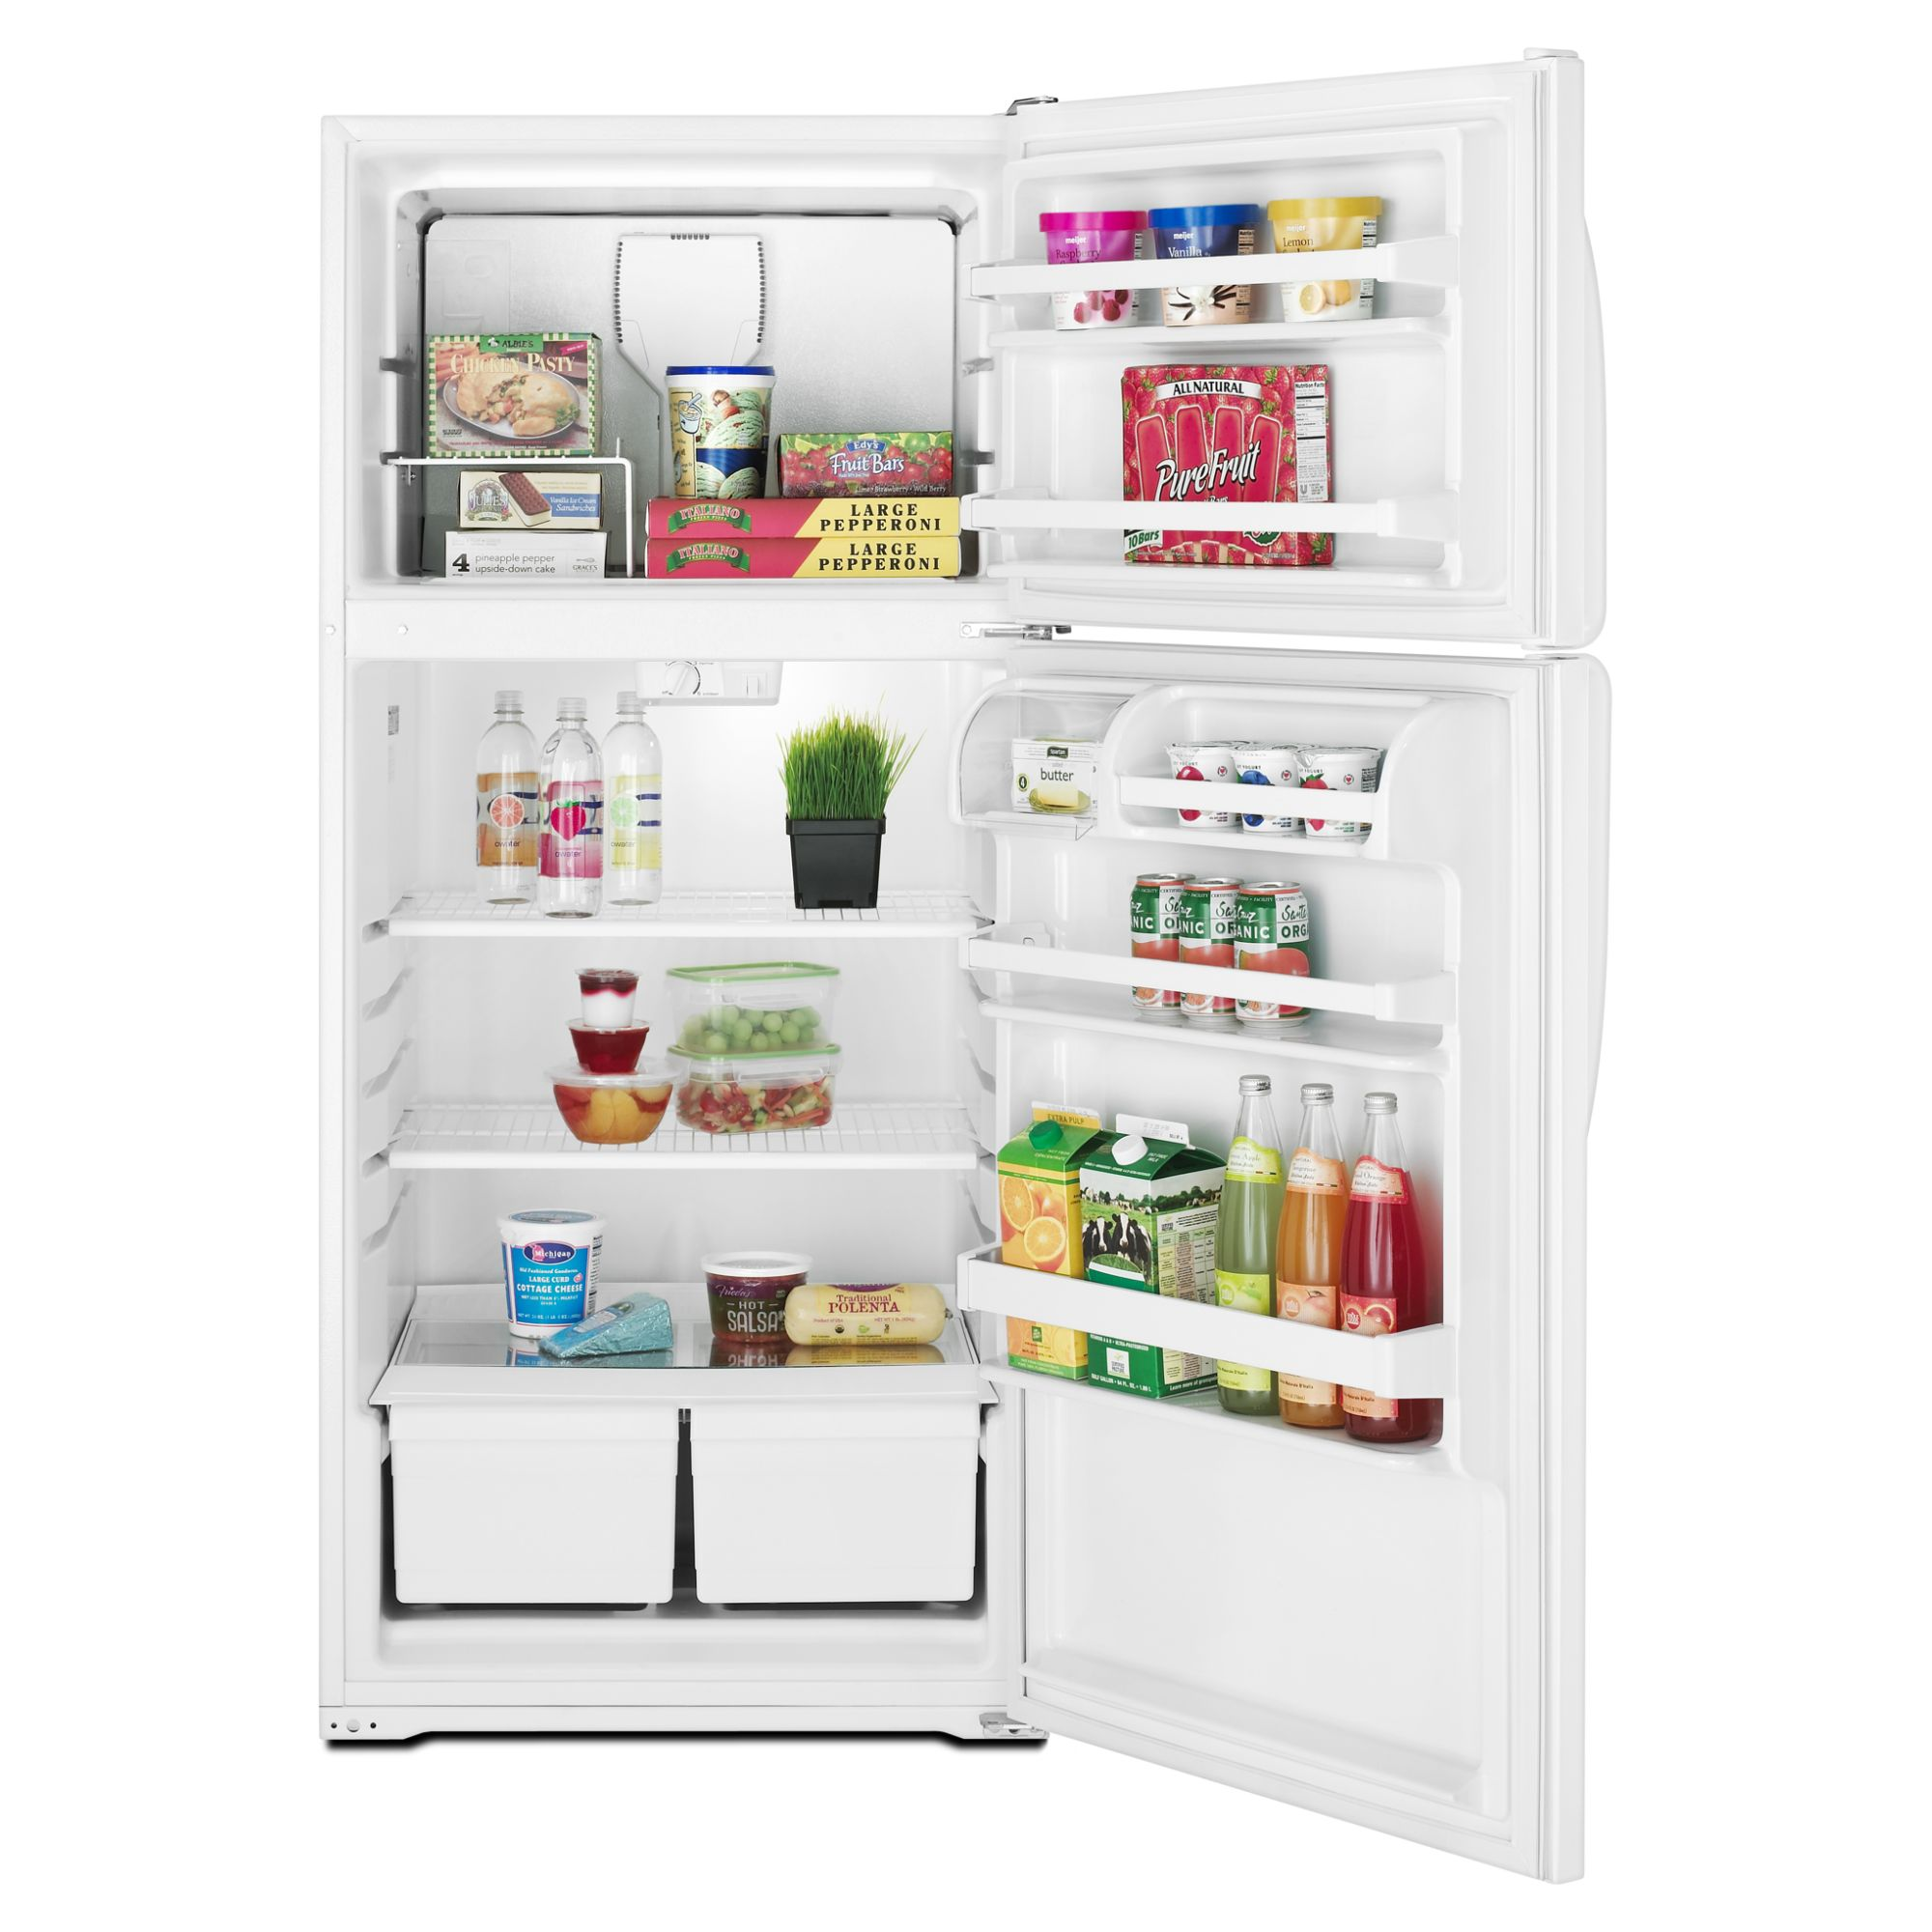 Amana 14.4 cu. ft. Top-Freezer Refrigerator - White